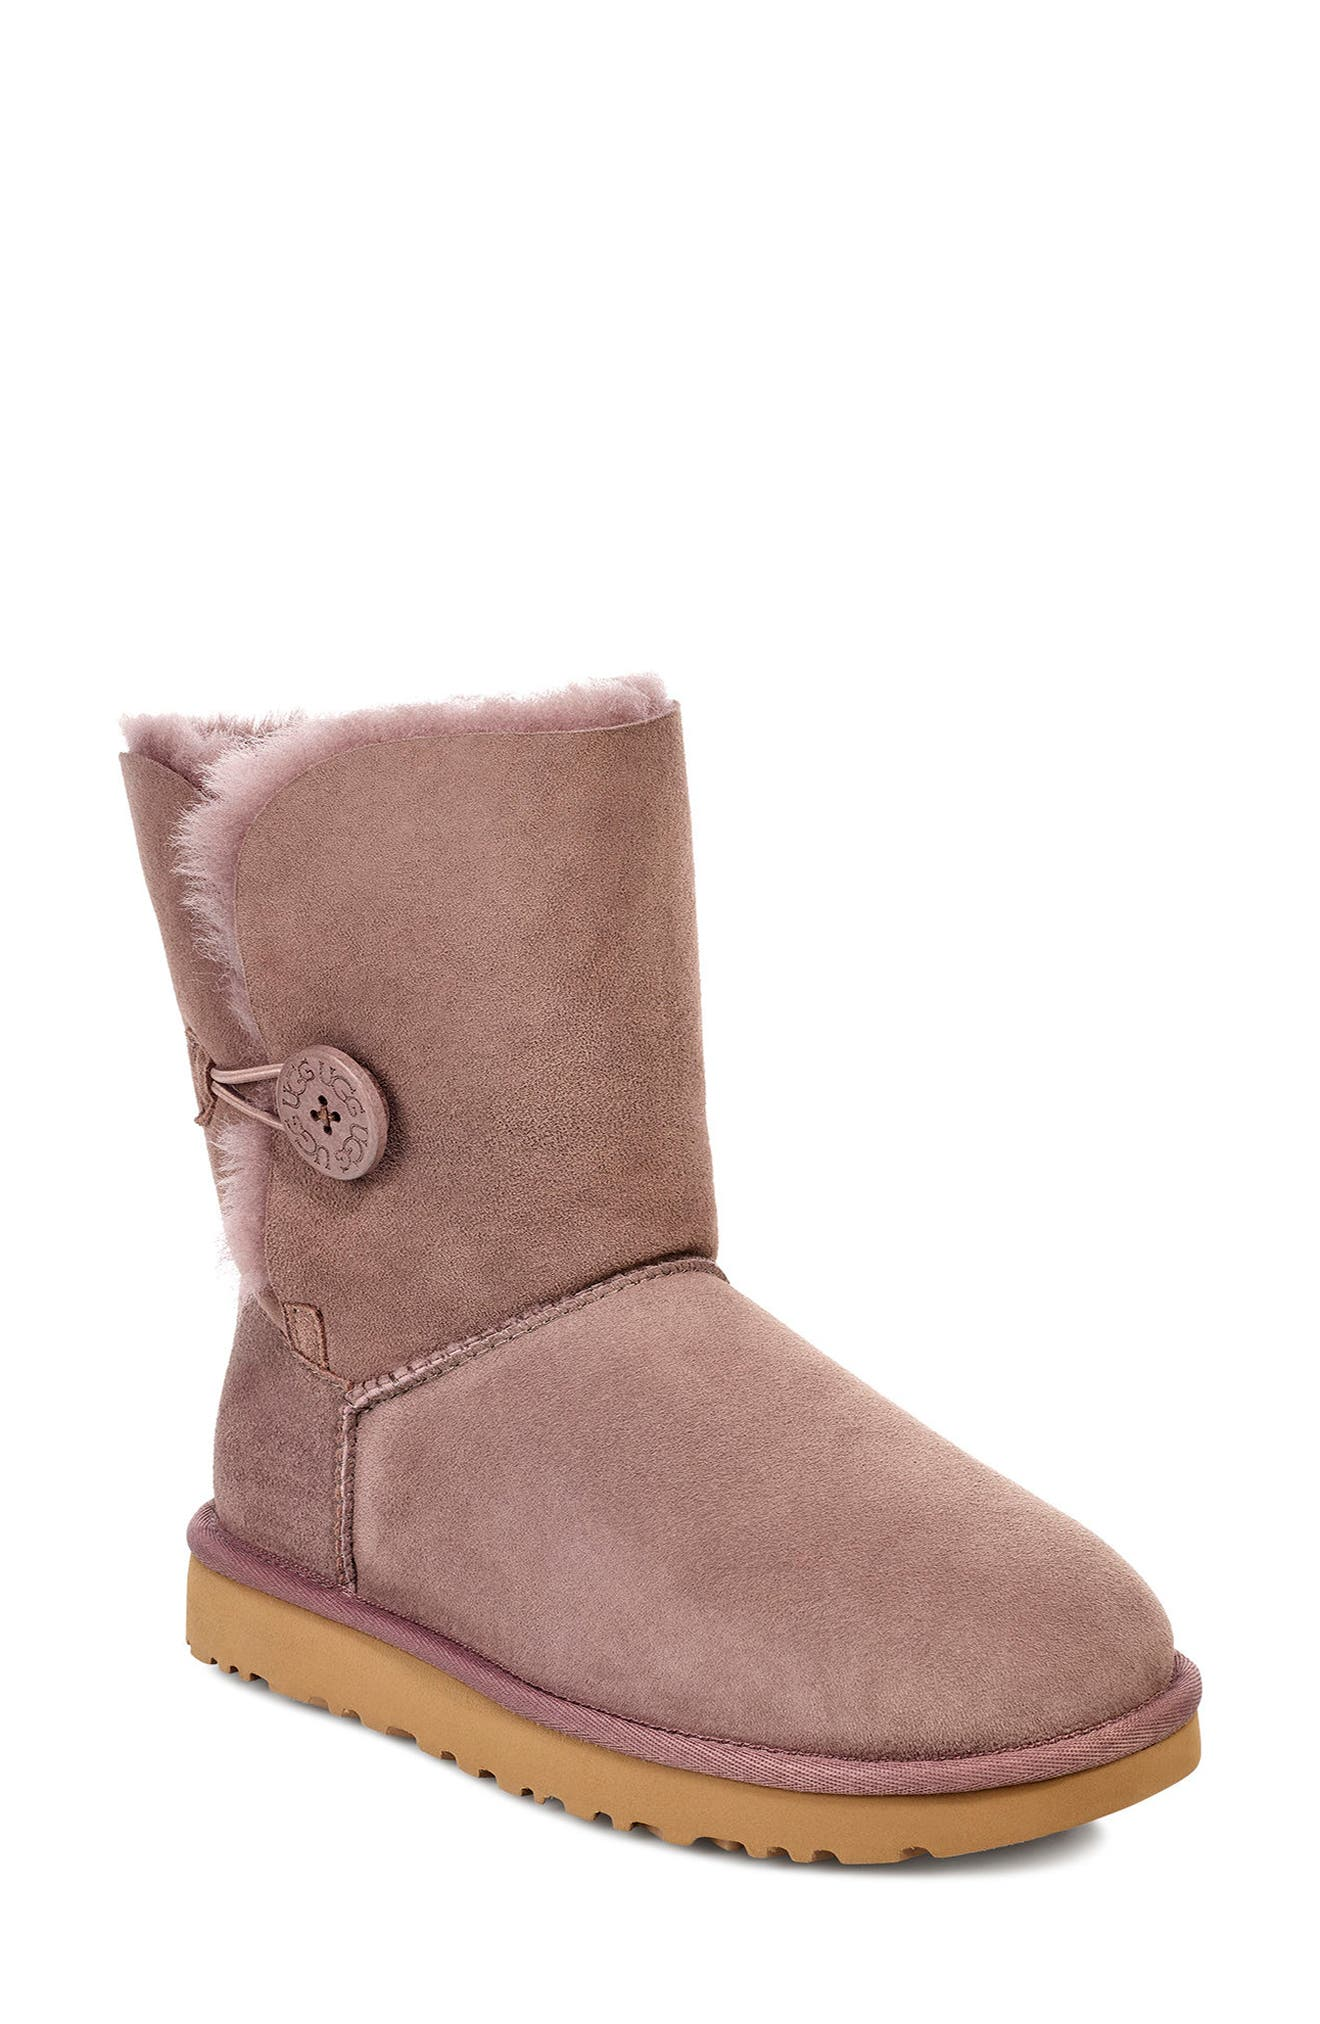 'Bailey Button II' Boot,                         Main,                         color, STORMY GREY SUEDE